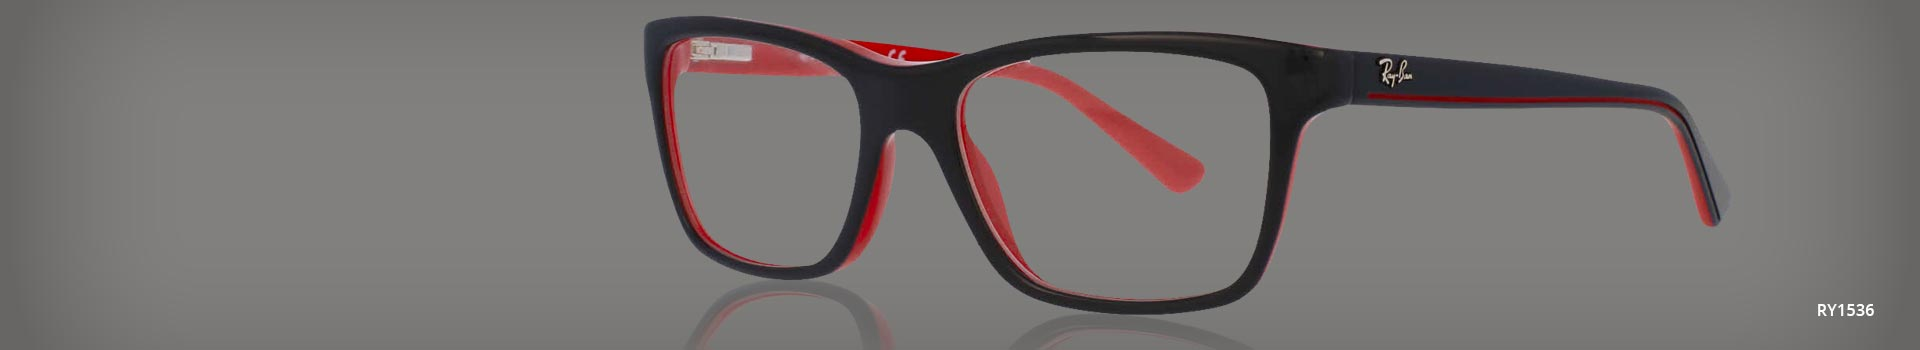 Boy's Eyeglasses